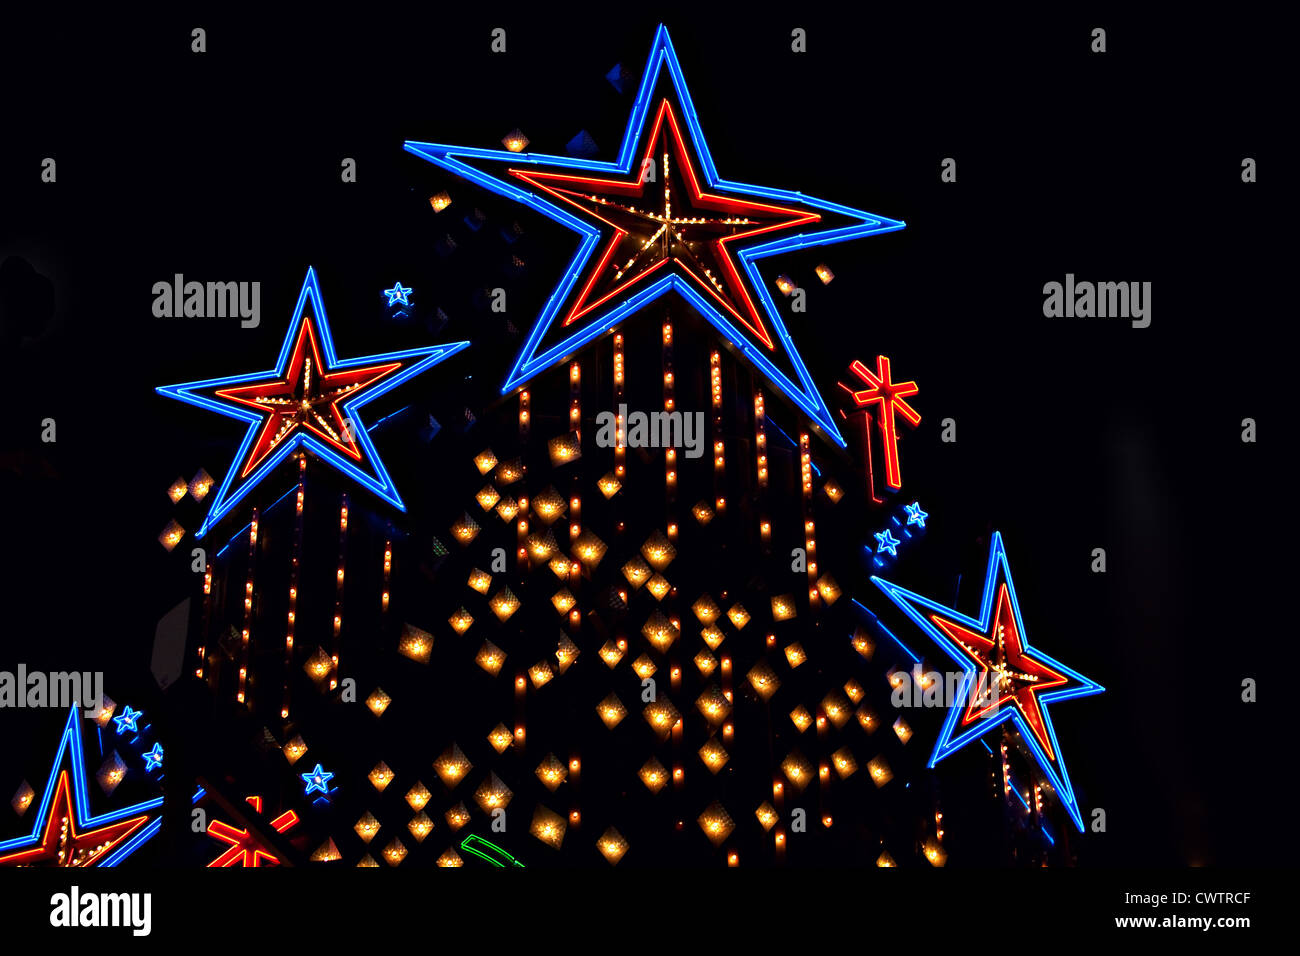 neon stars, bright lights  against a black background - Stock Image